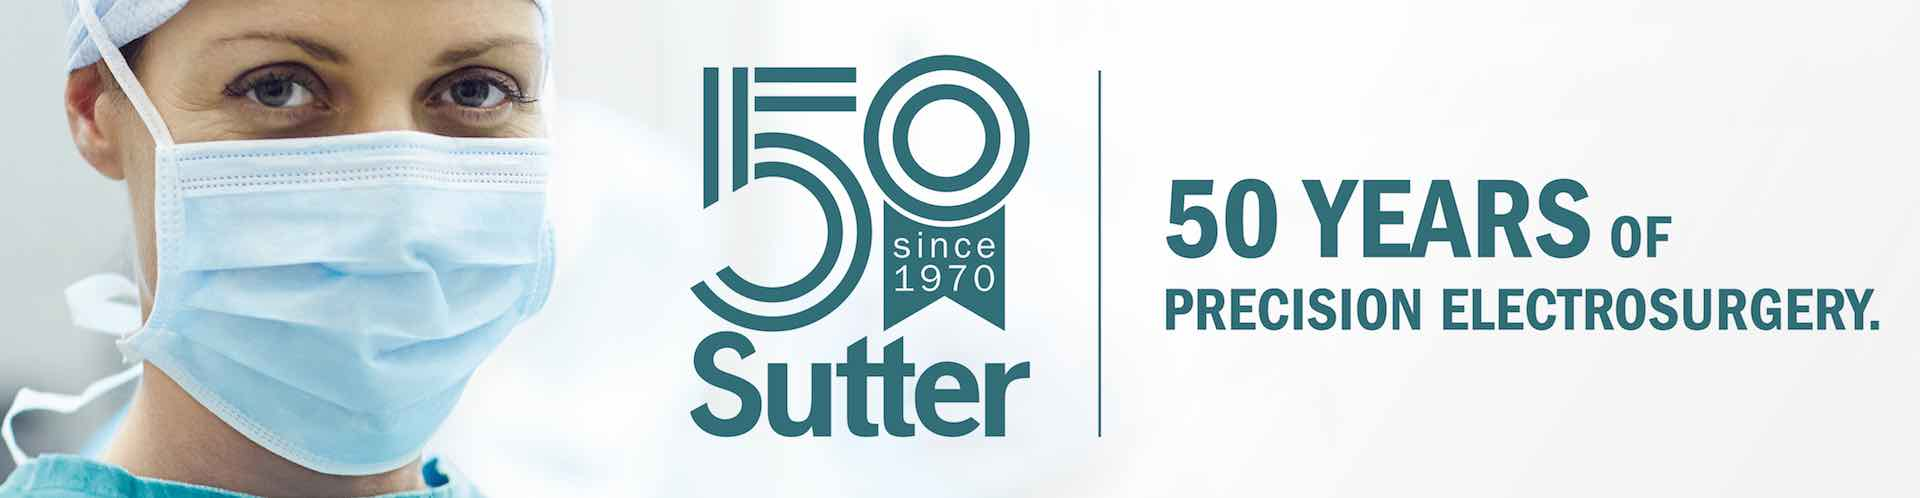 Sutter Medical 50th banner